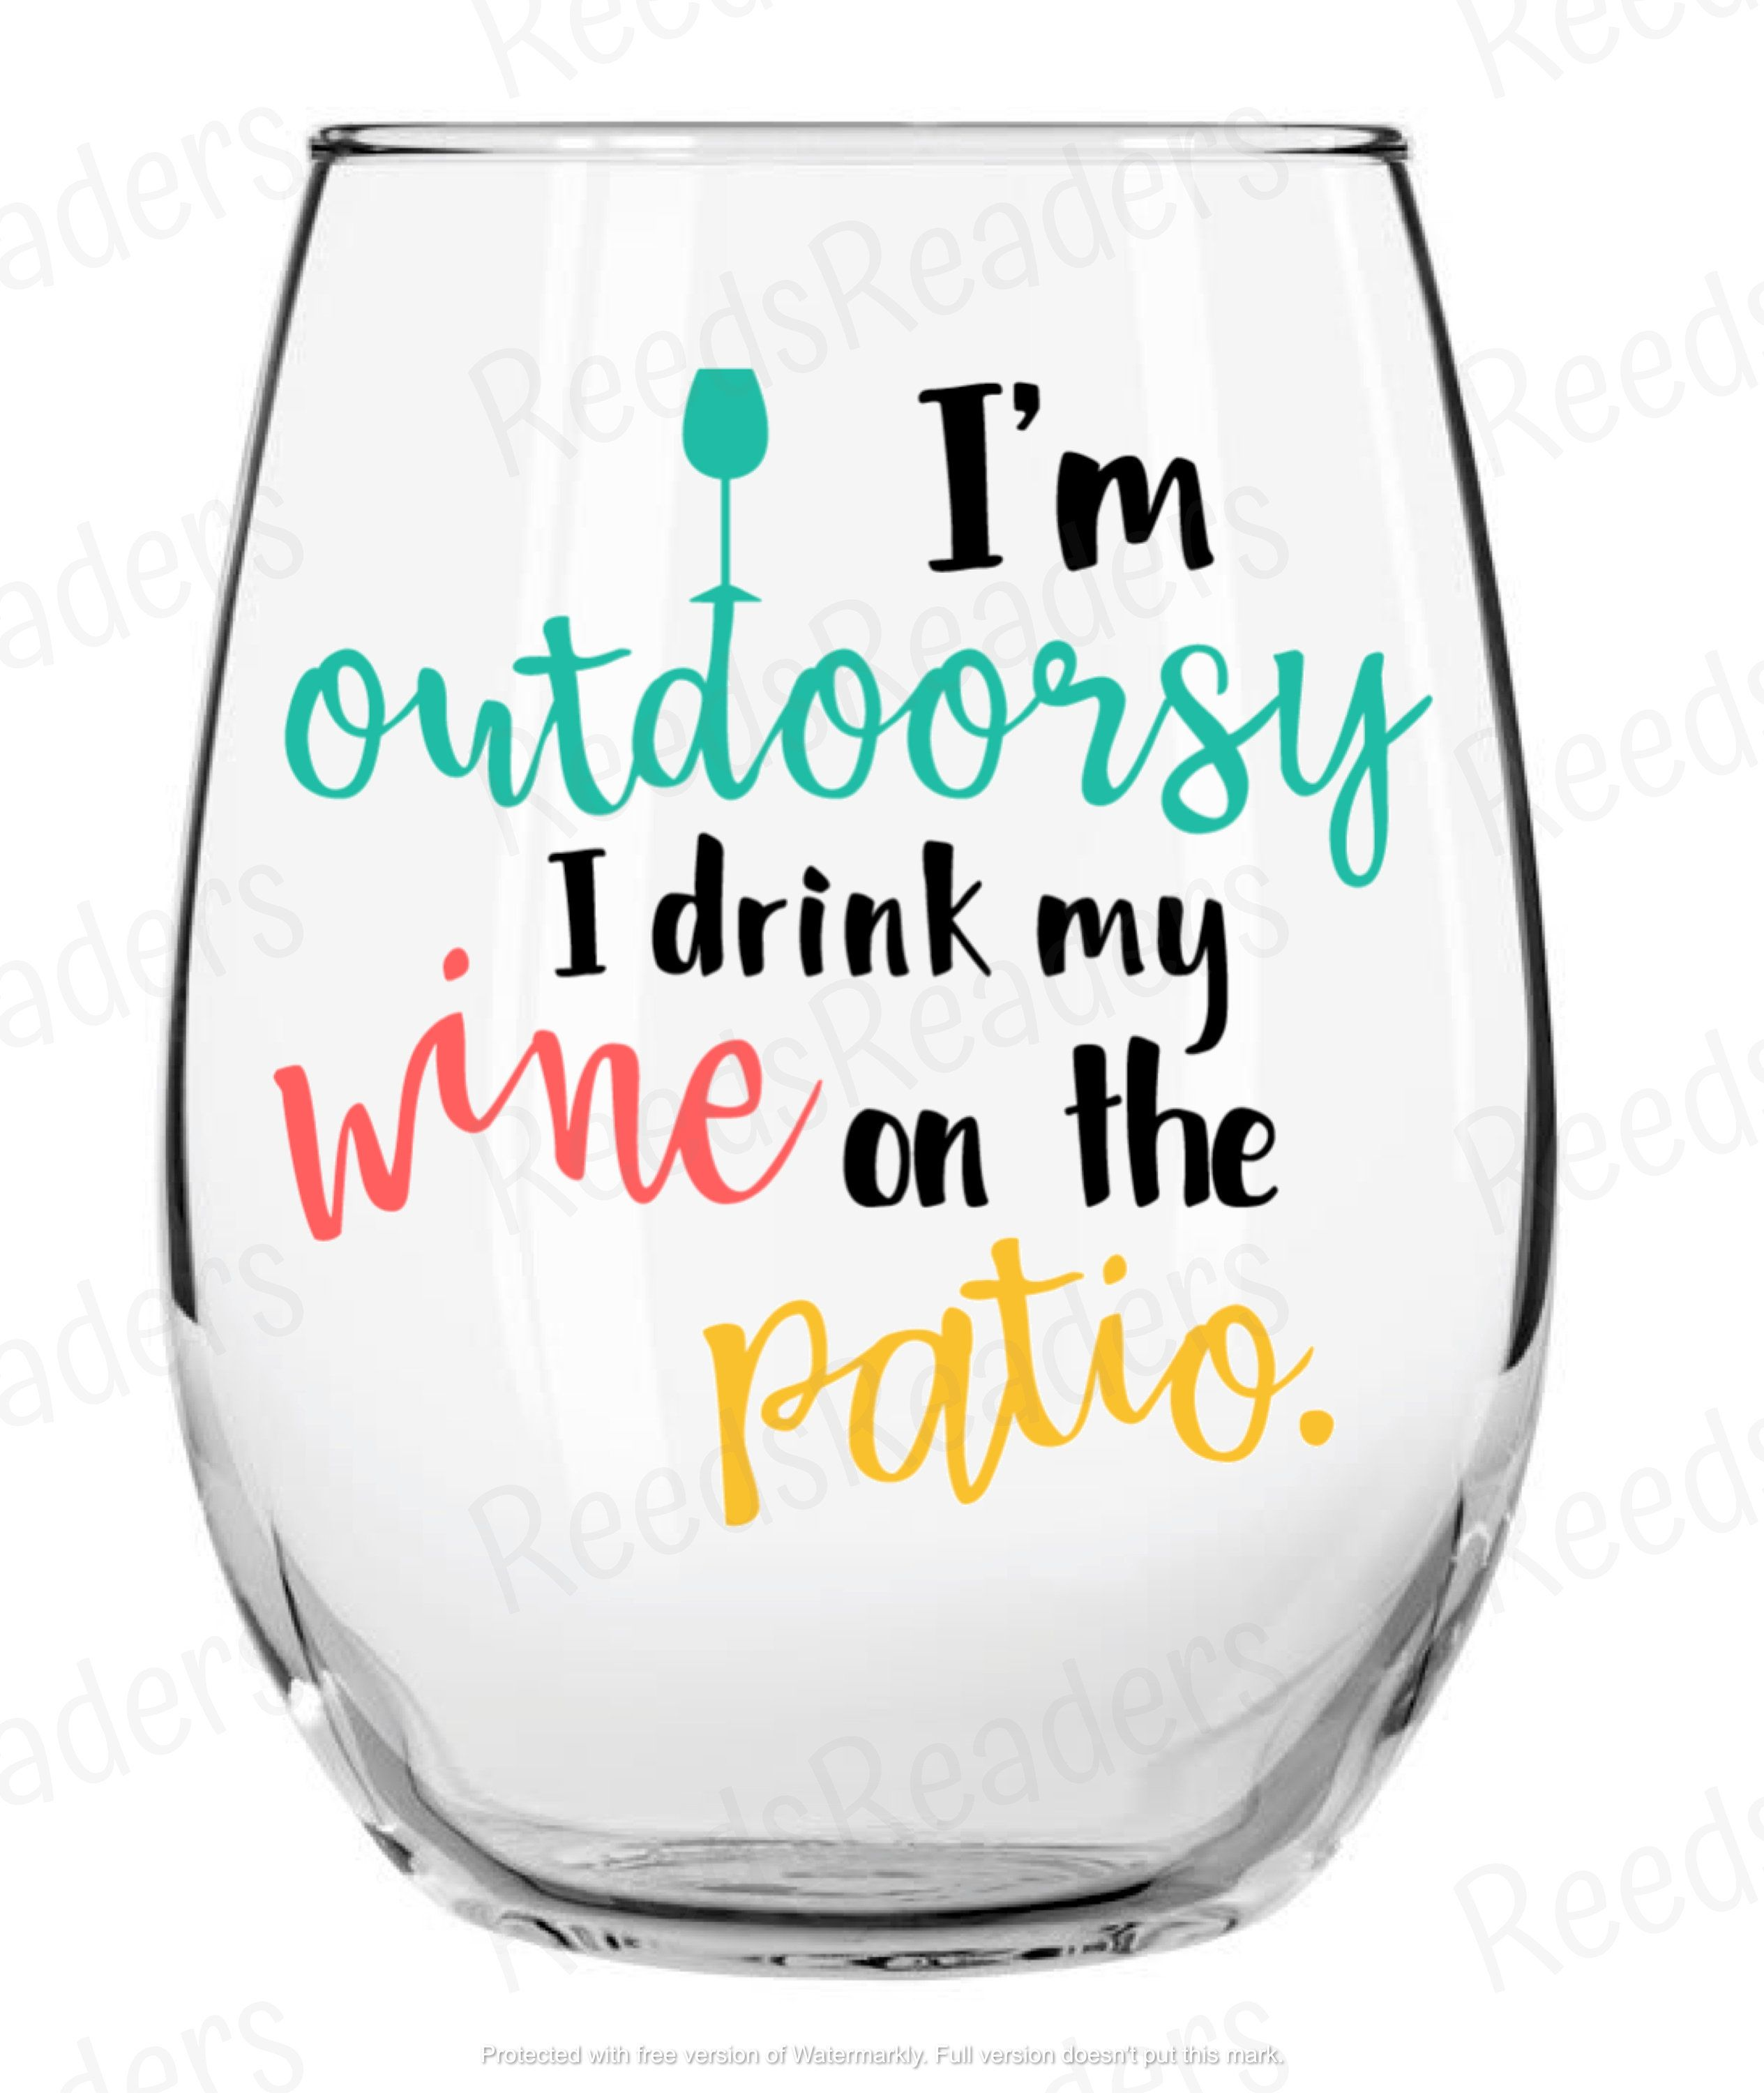 Funny Wine Glass Stemless Wine Glass Vinyl Decal I M Outdoorsy I Drink My Wine On The Patio Cute Wine Glas In 2020 Funny Wine Glass Wine Glass Vinyl Wine Humor